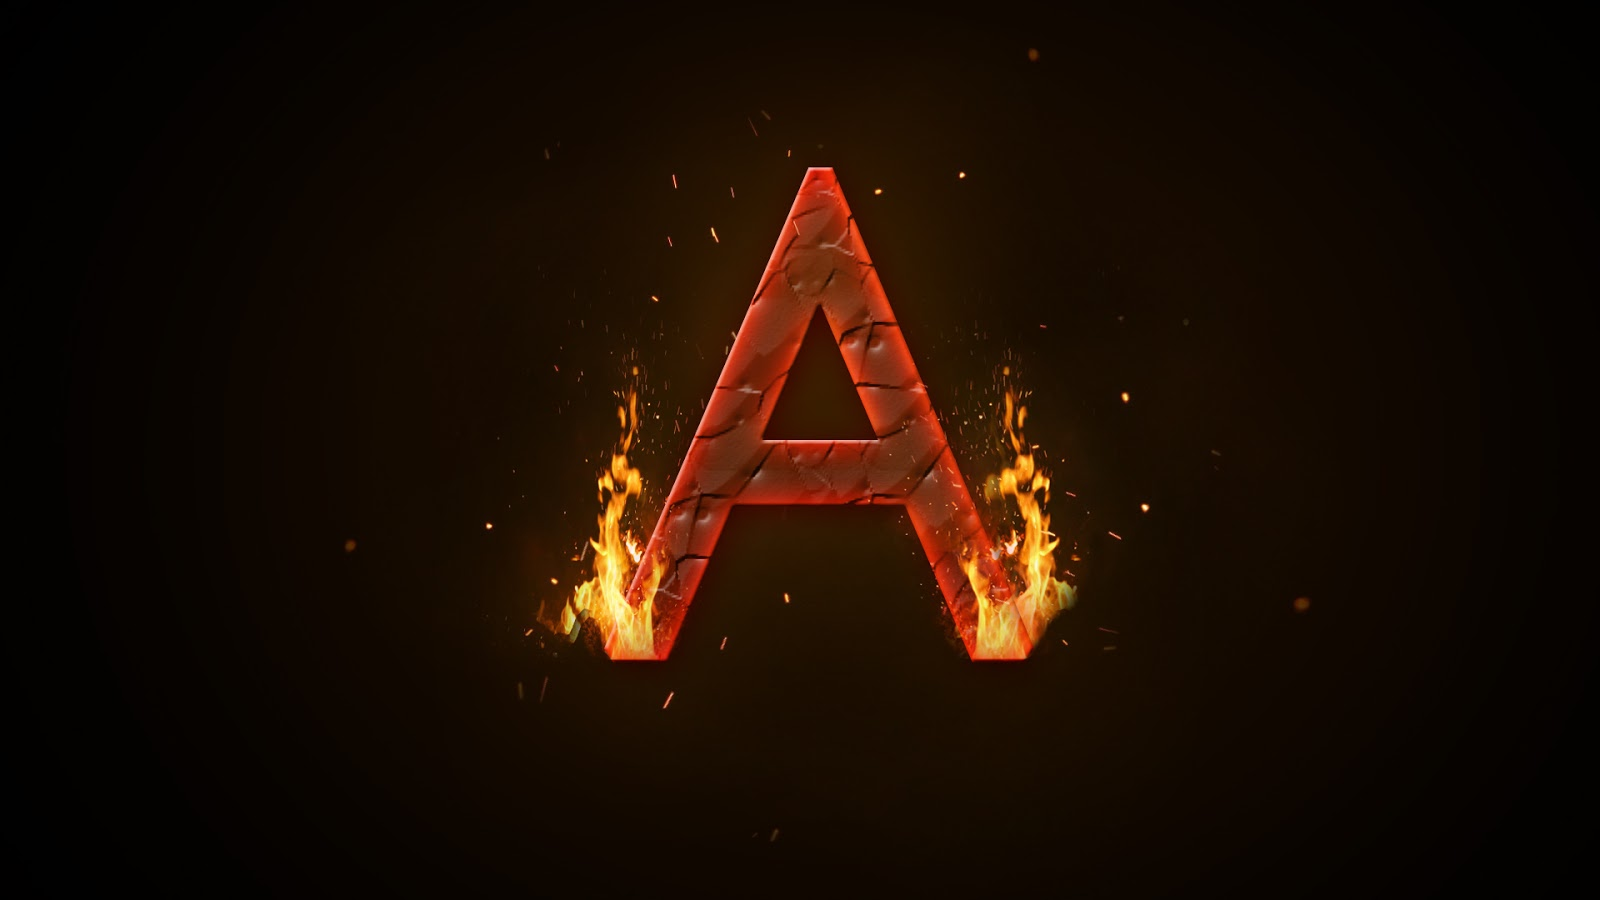 VD Studio: How to make Fire Letter 'A' || Photoshop Tutorial